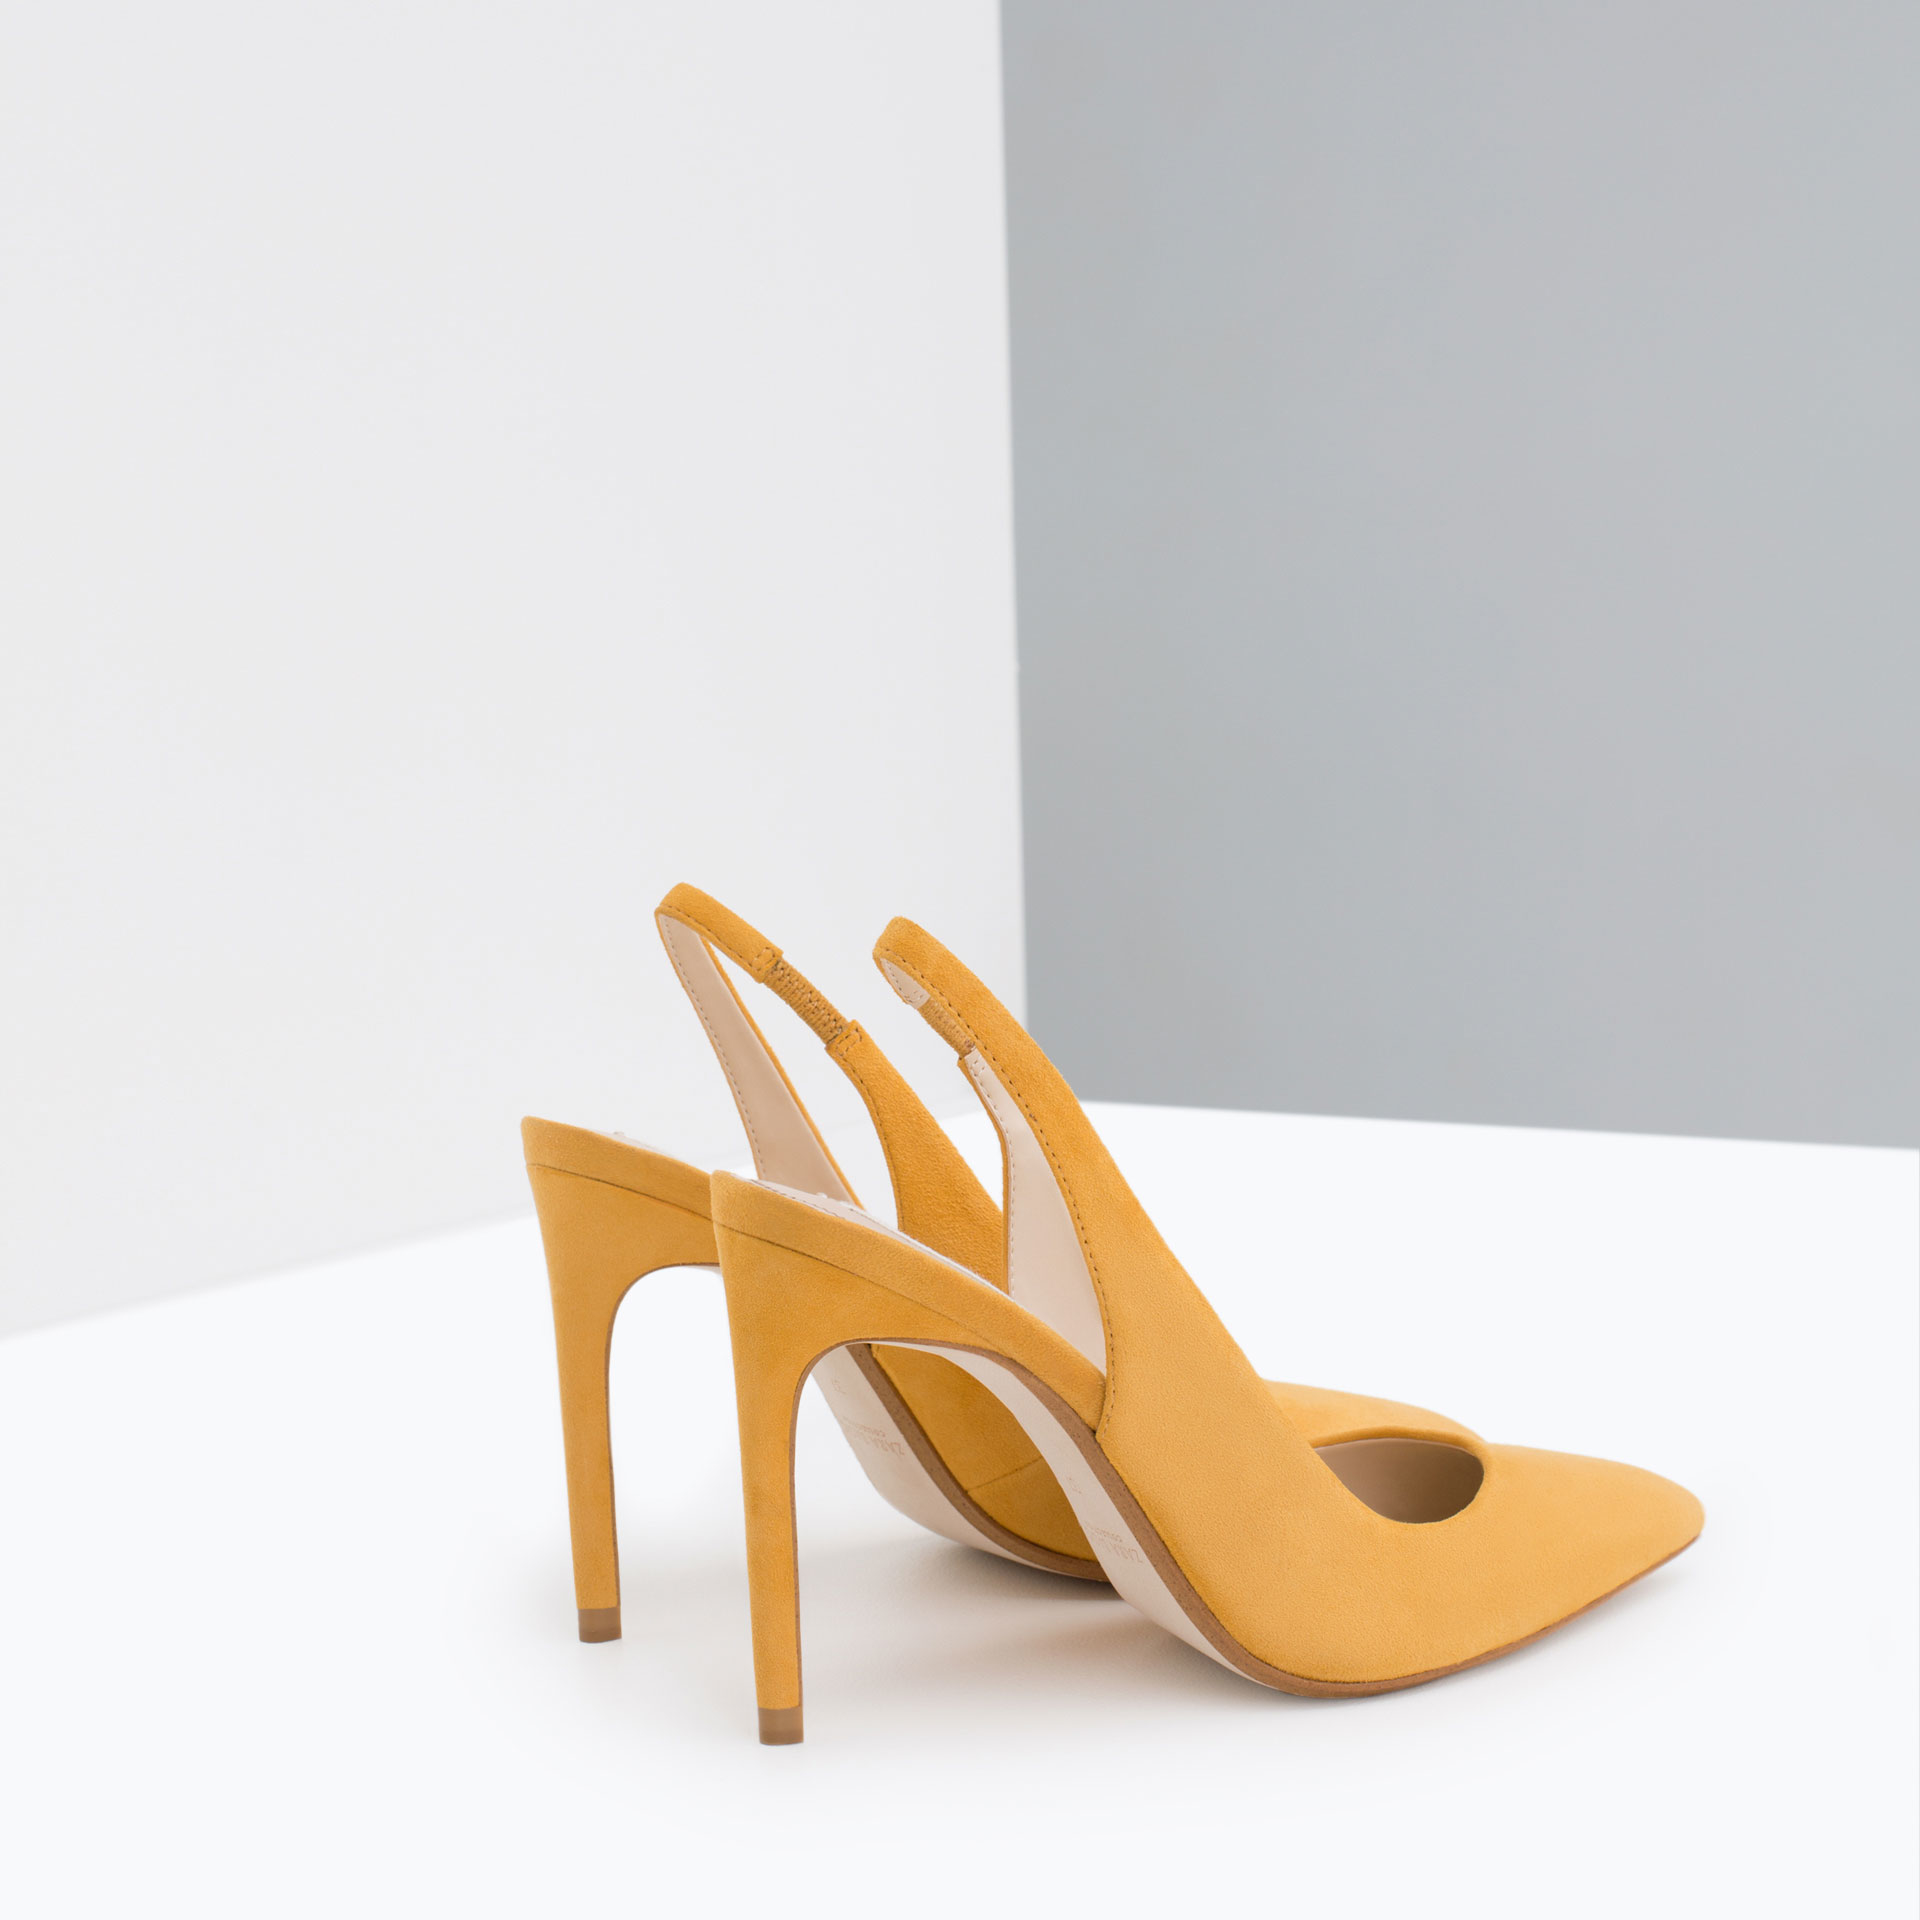 Zara Leather High Heel Shoes Mustard